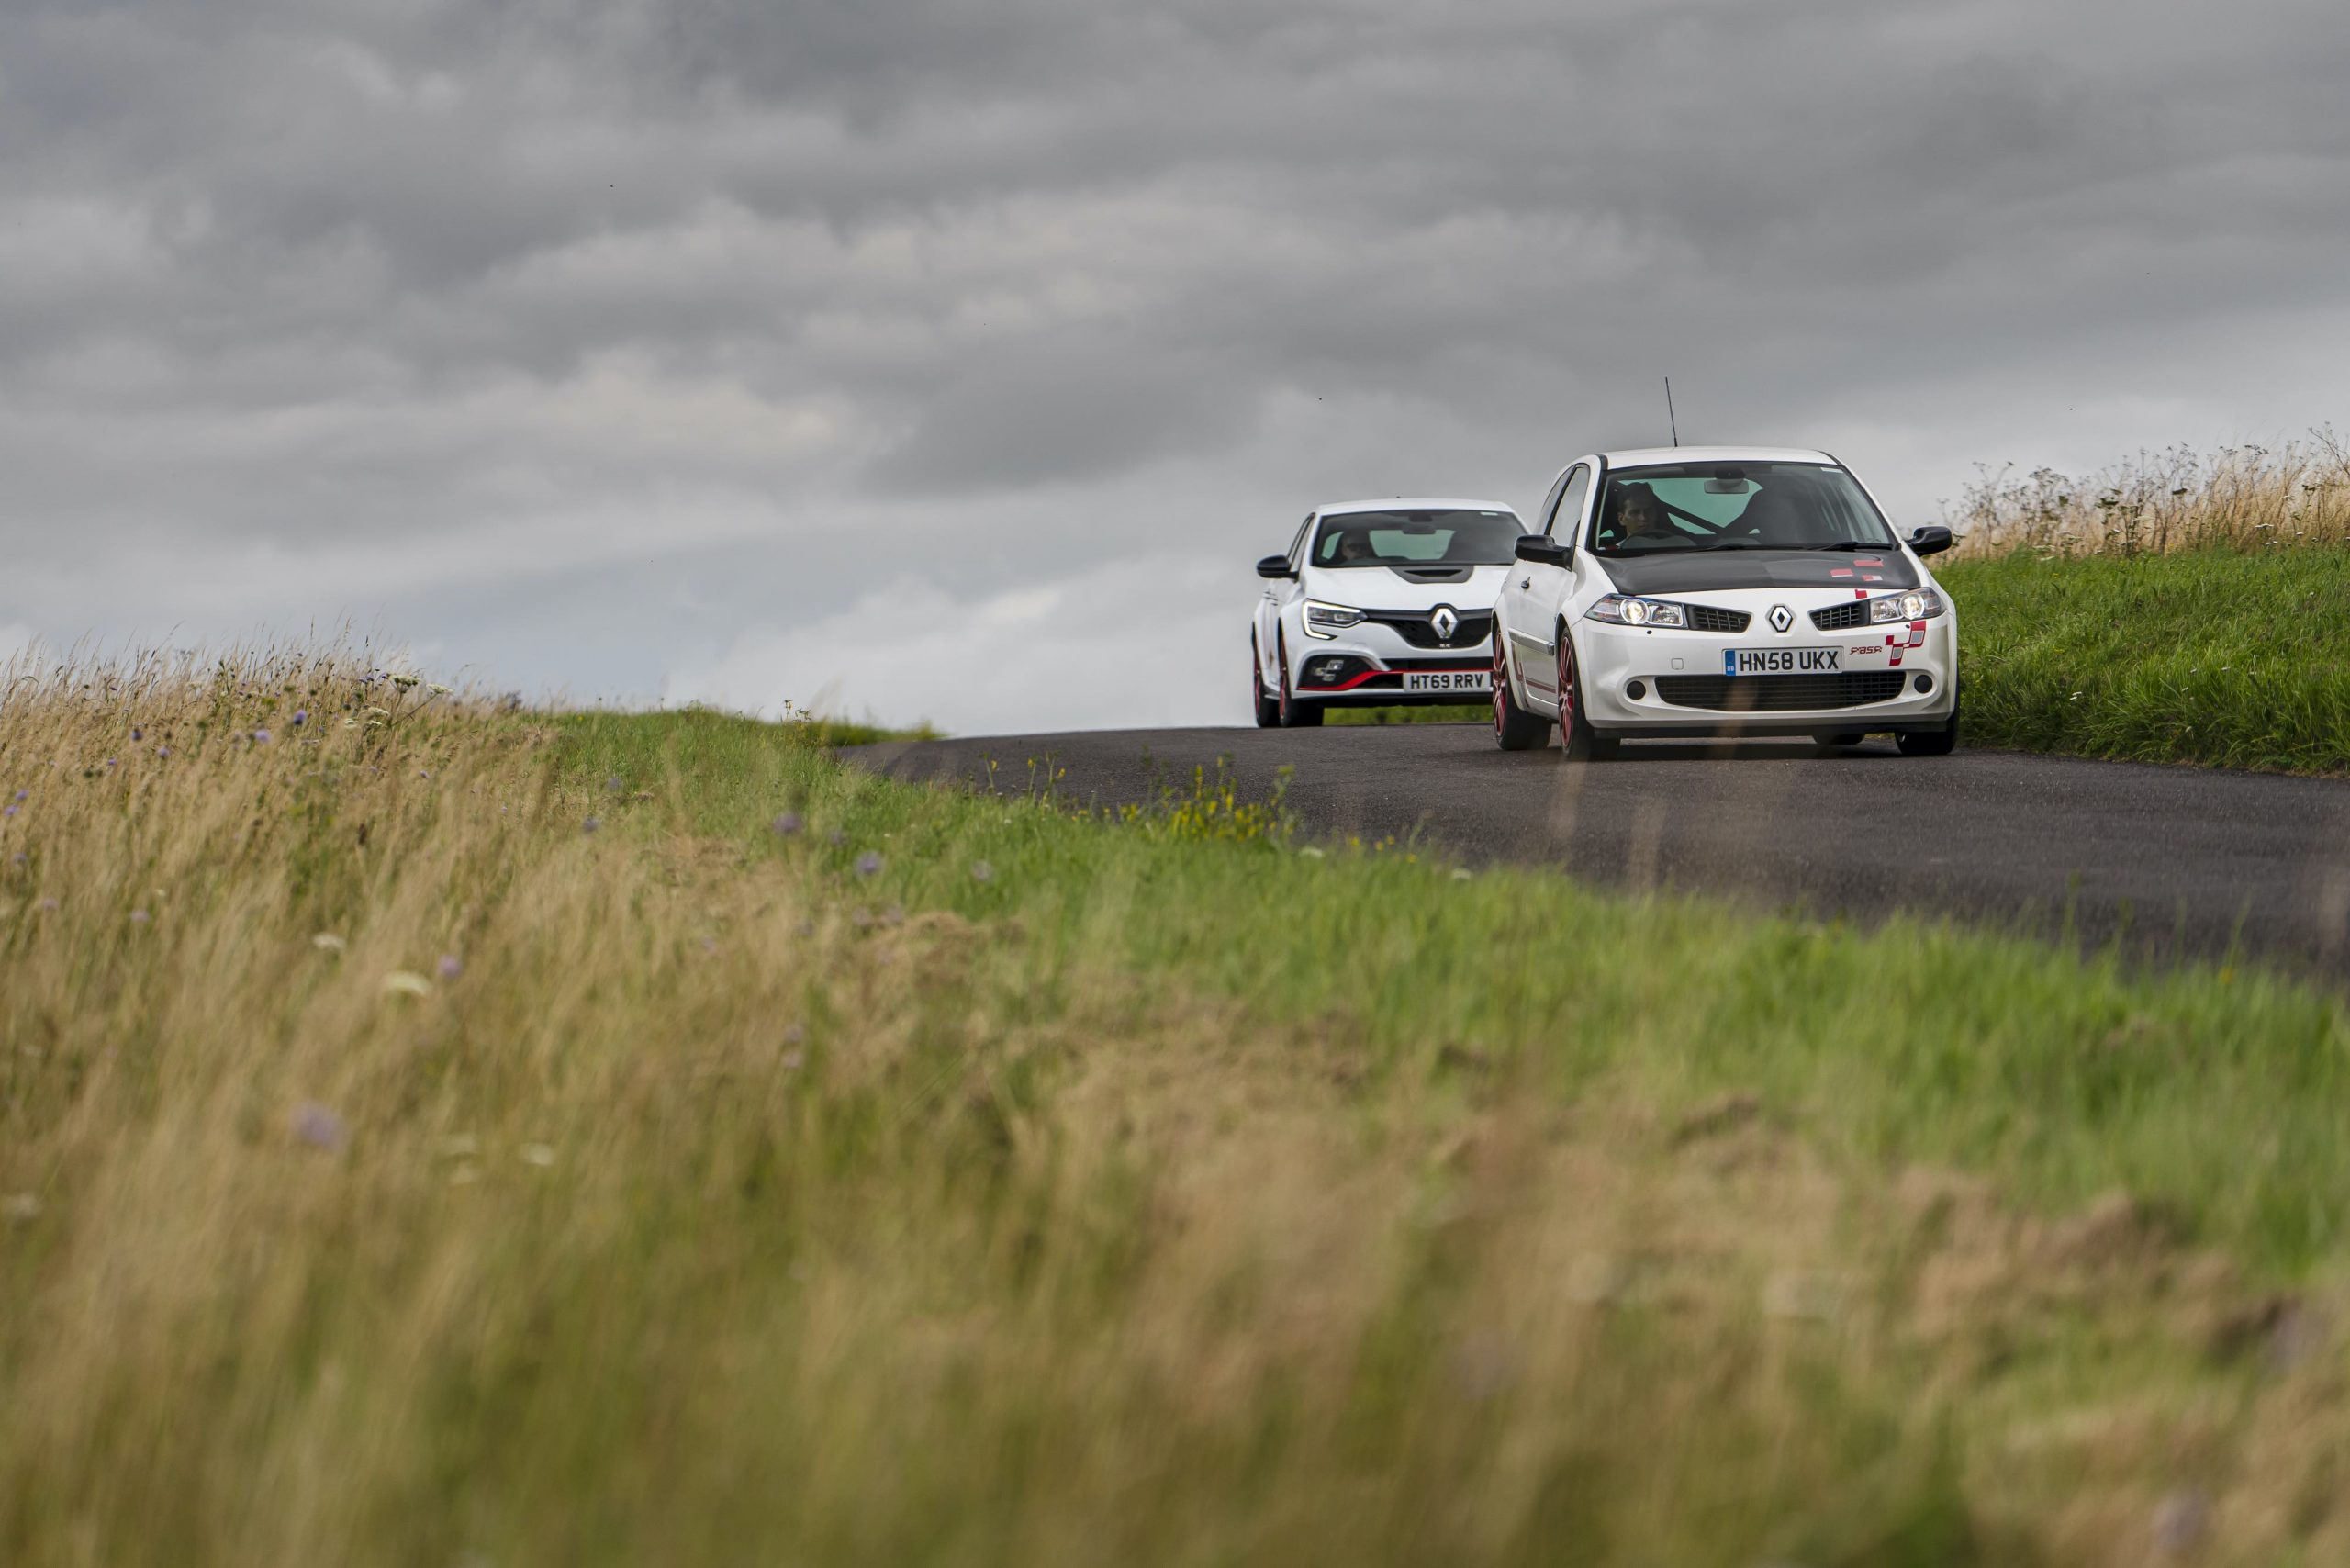 Renault Megane R26R and Trophy R country road action